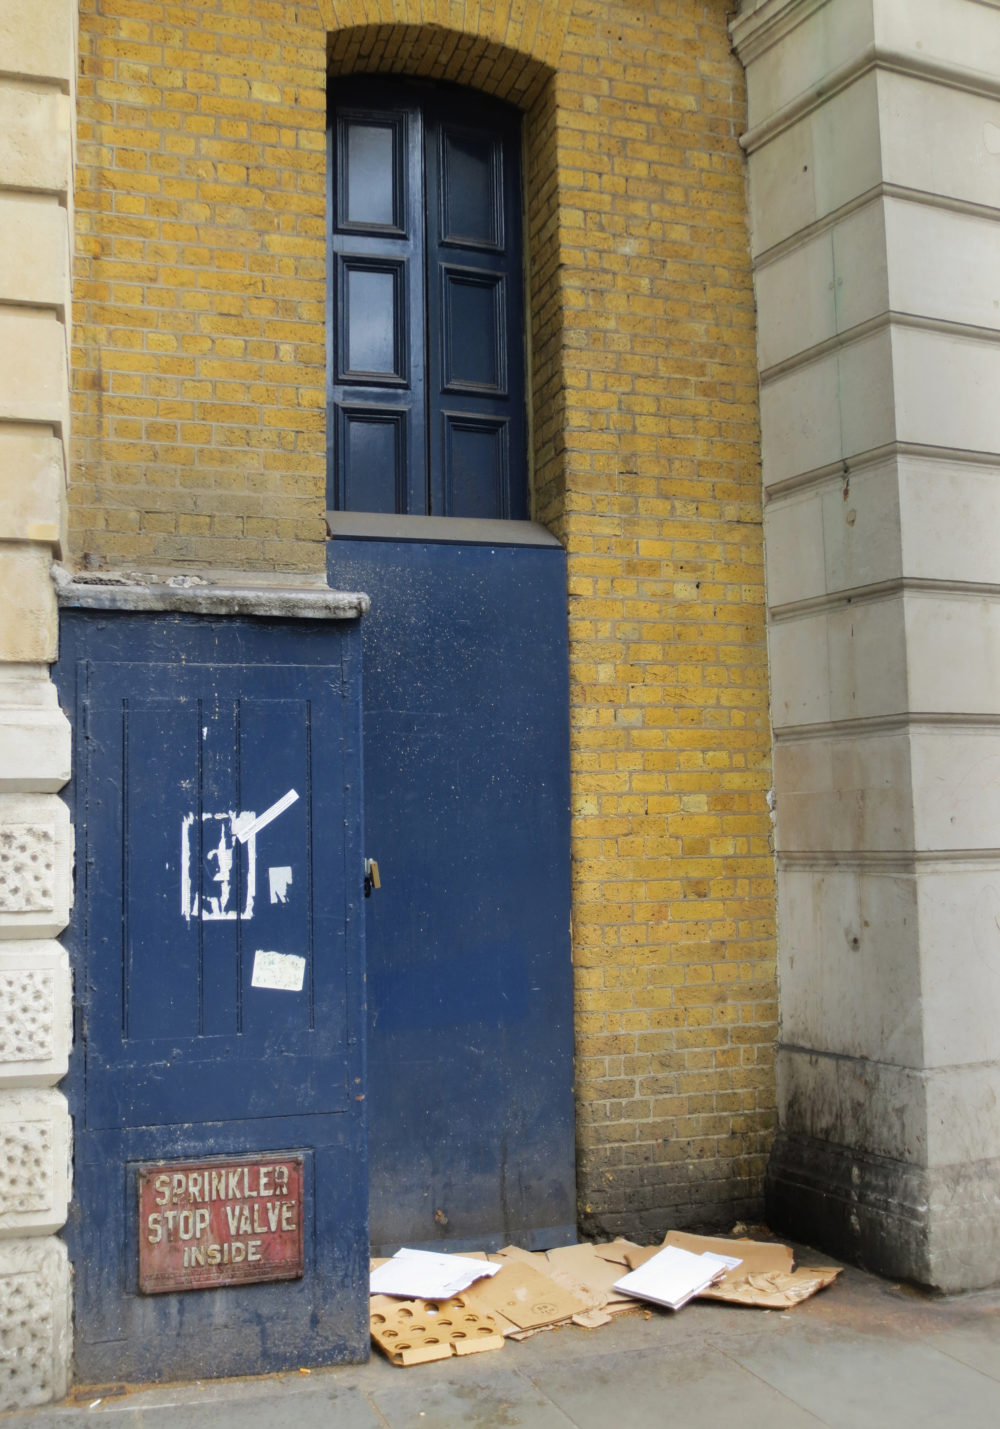 I was sleeping rough in this doorway. An off-duty social worker came and approached me. She promised me she would come back the next day and help me to get some help. The next day I waited over twelve hours desperate for her to return as she had promised. But I never saw her again.